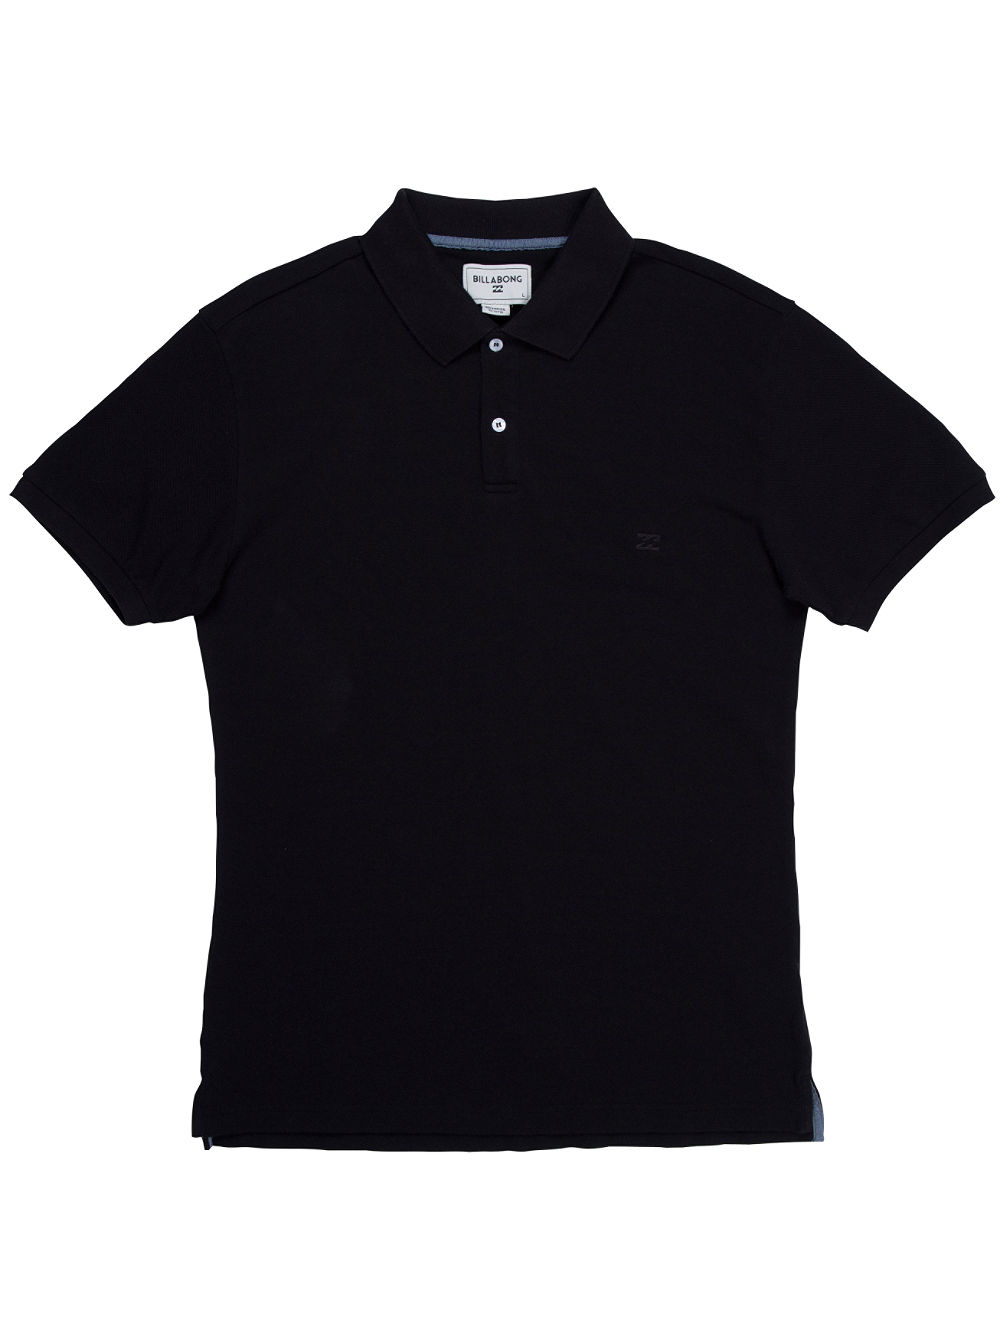 billabong-nelson-polo